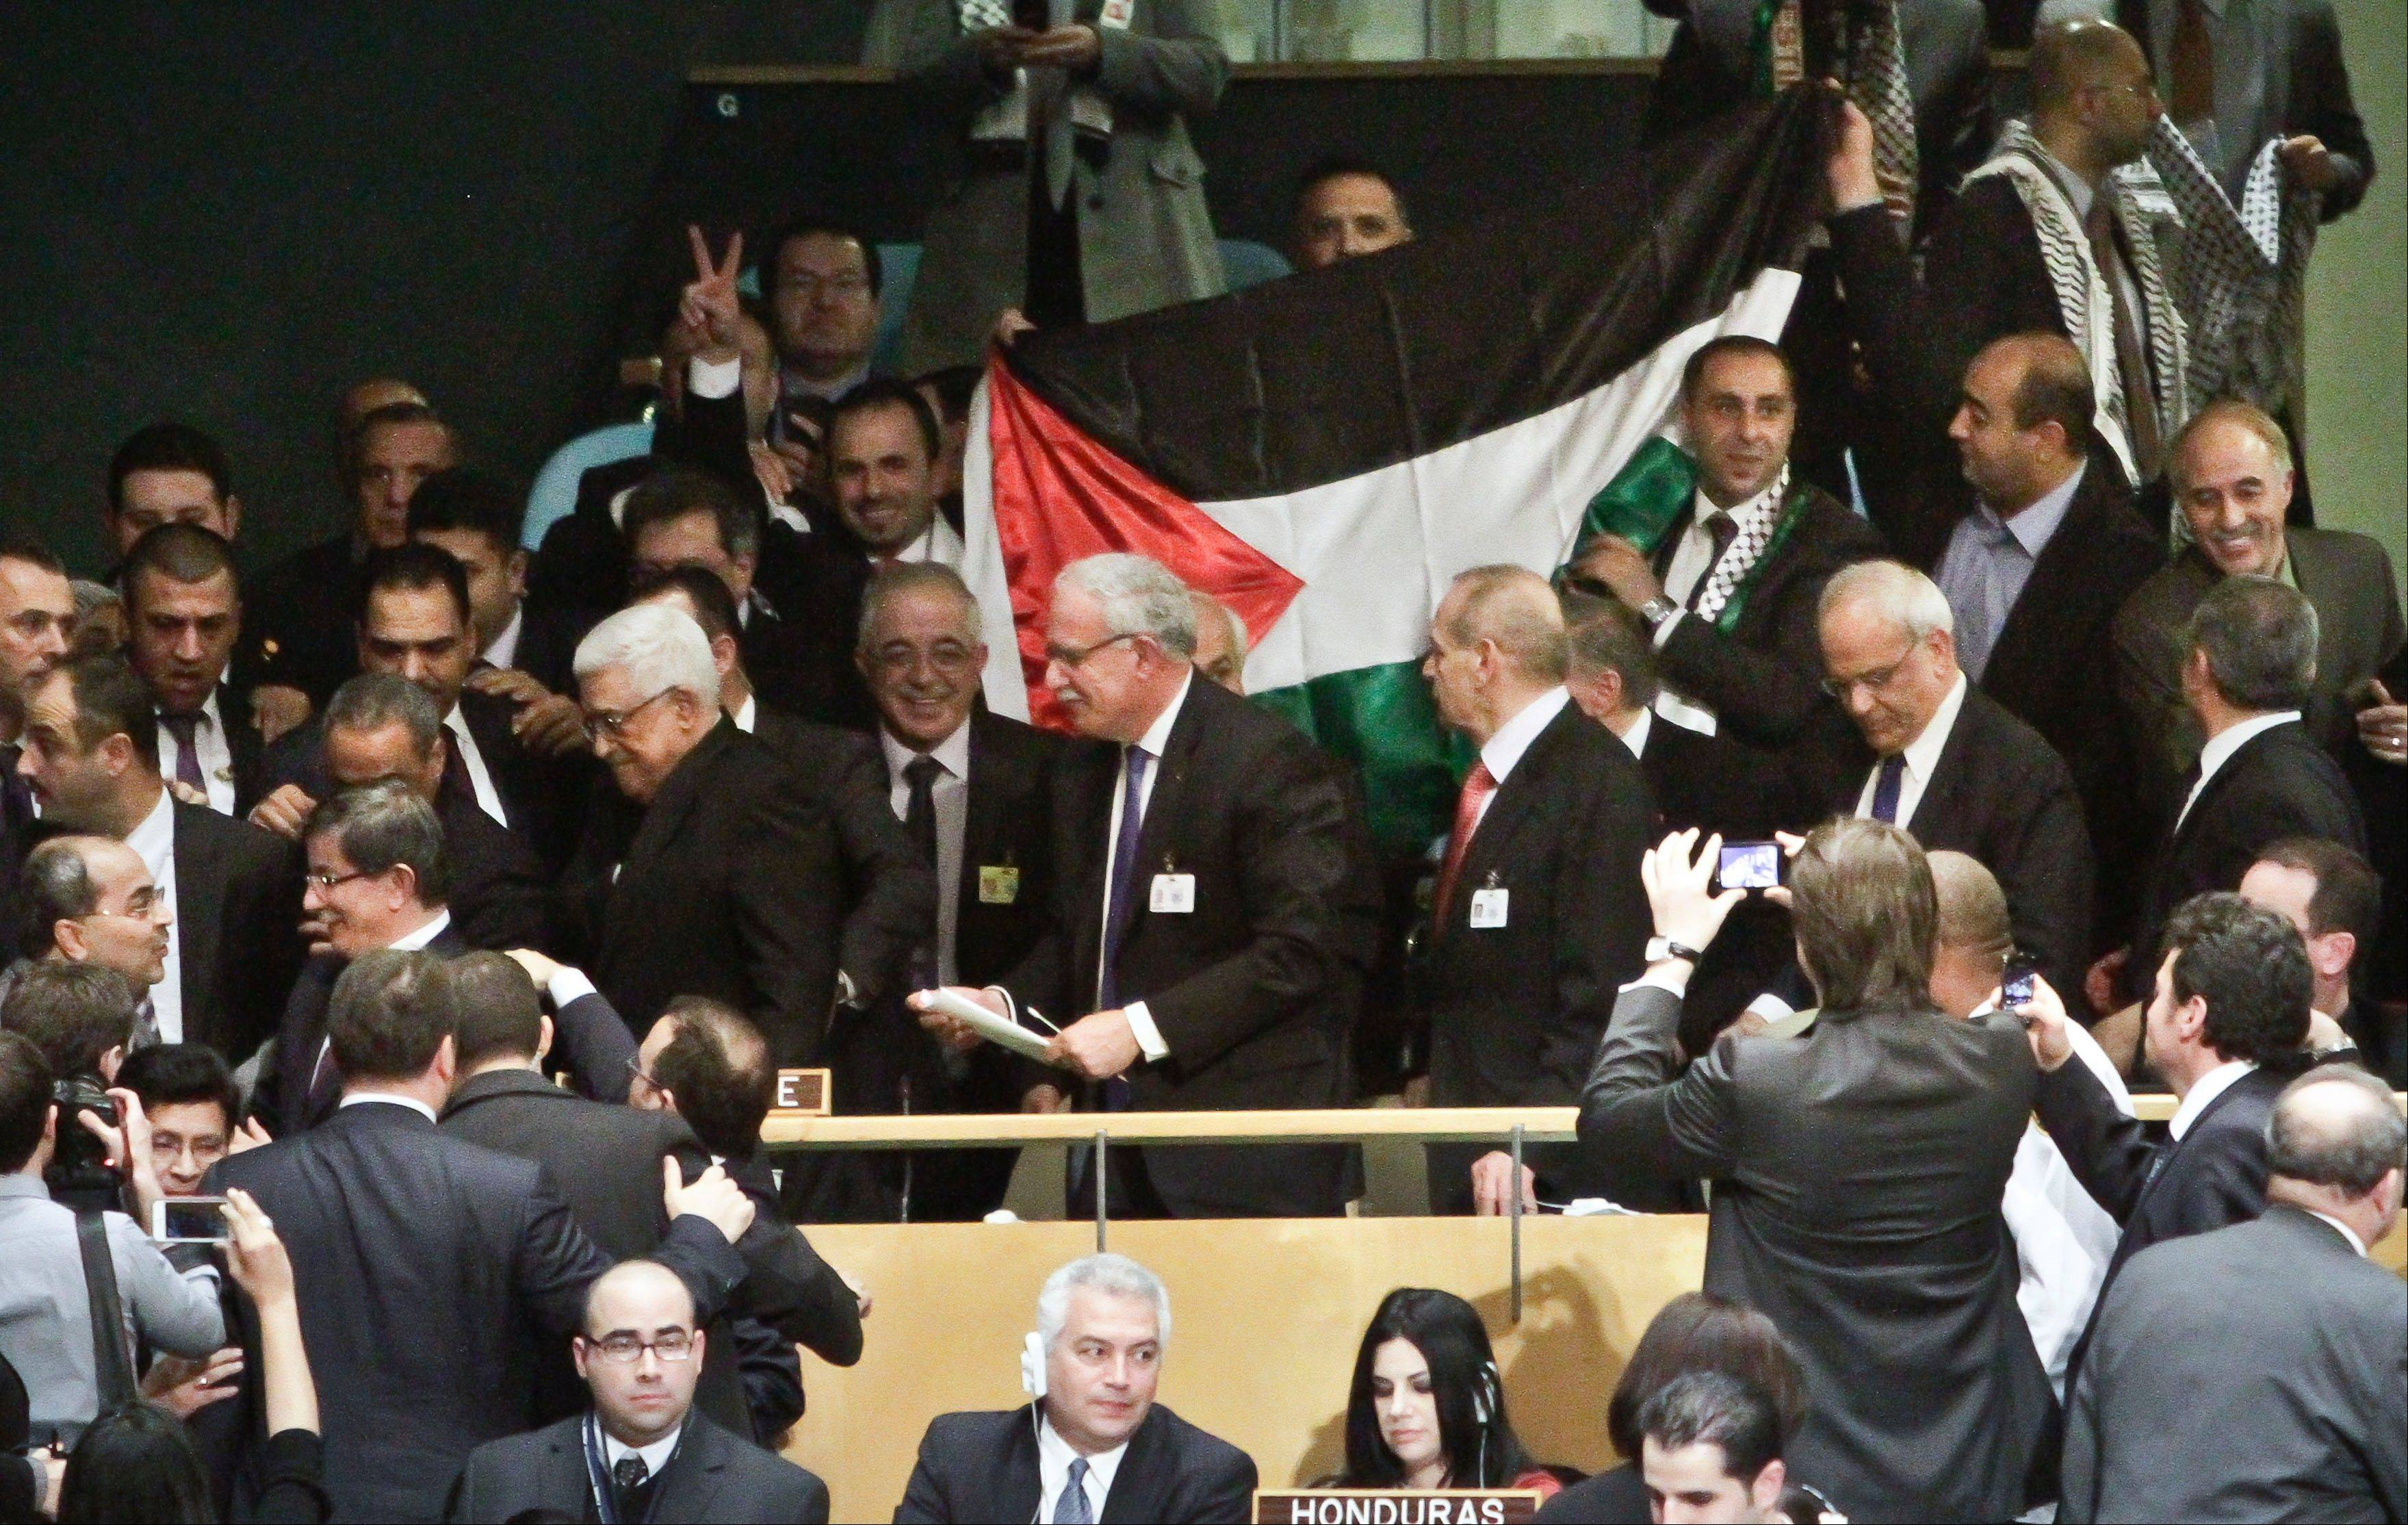 A Palestinian flag is displayed as Palestinian President Mahmoud Abbas leads his delegation from the U.N. General Assembly after a vote recognizing Palestine as a state on Thursday, Nov. 29, 2012 in New York. Palestinians won the statehood vote, even as the U.S., Israel�s closest ally, mounted a campaign to head off the General Assembly vote.